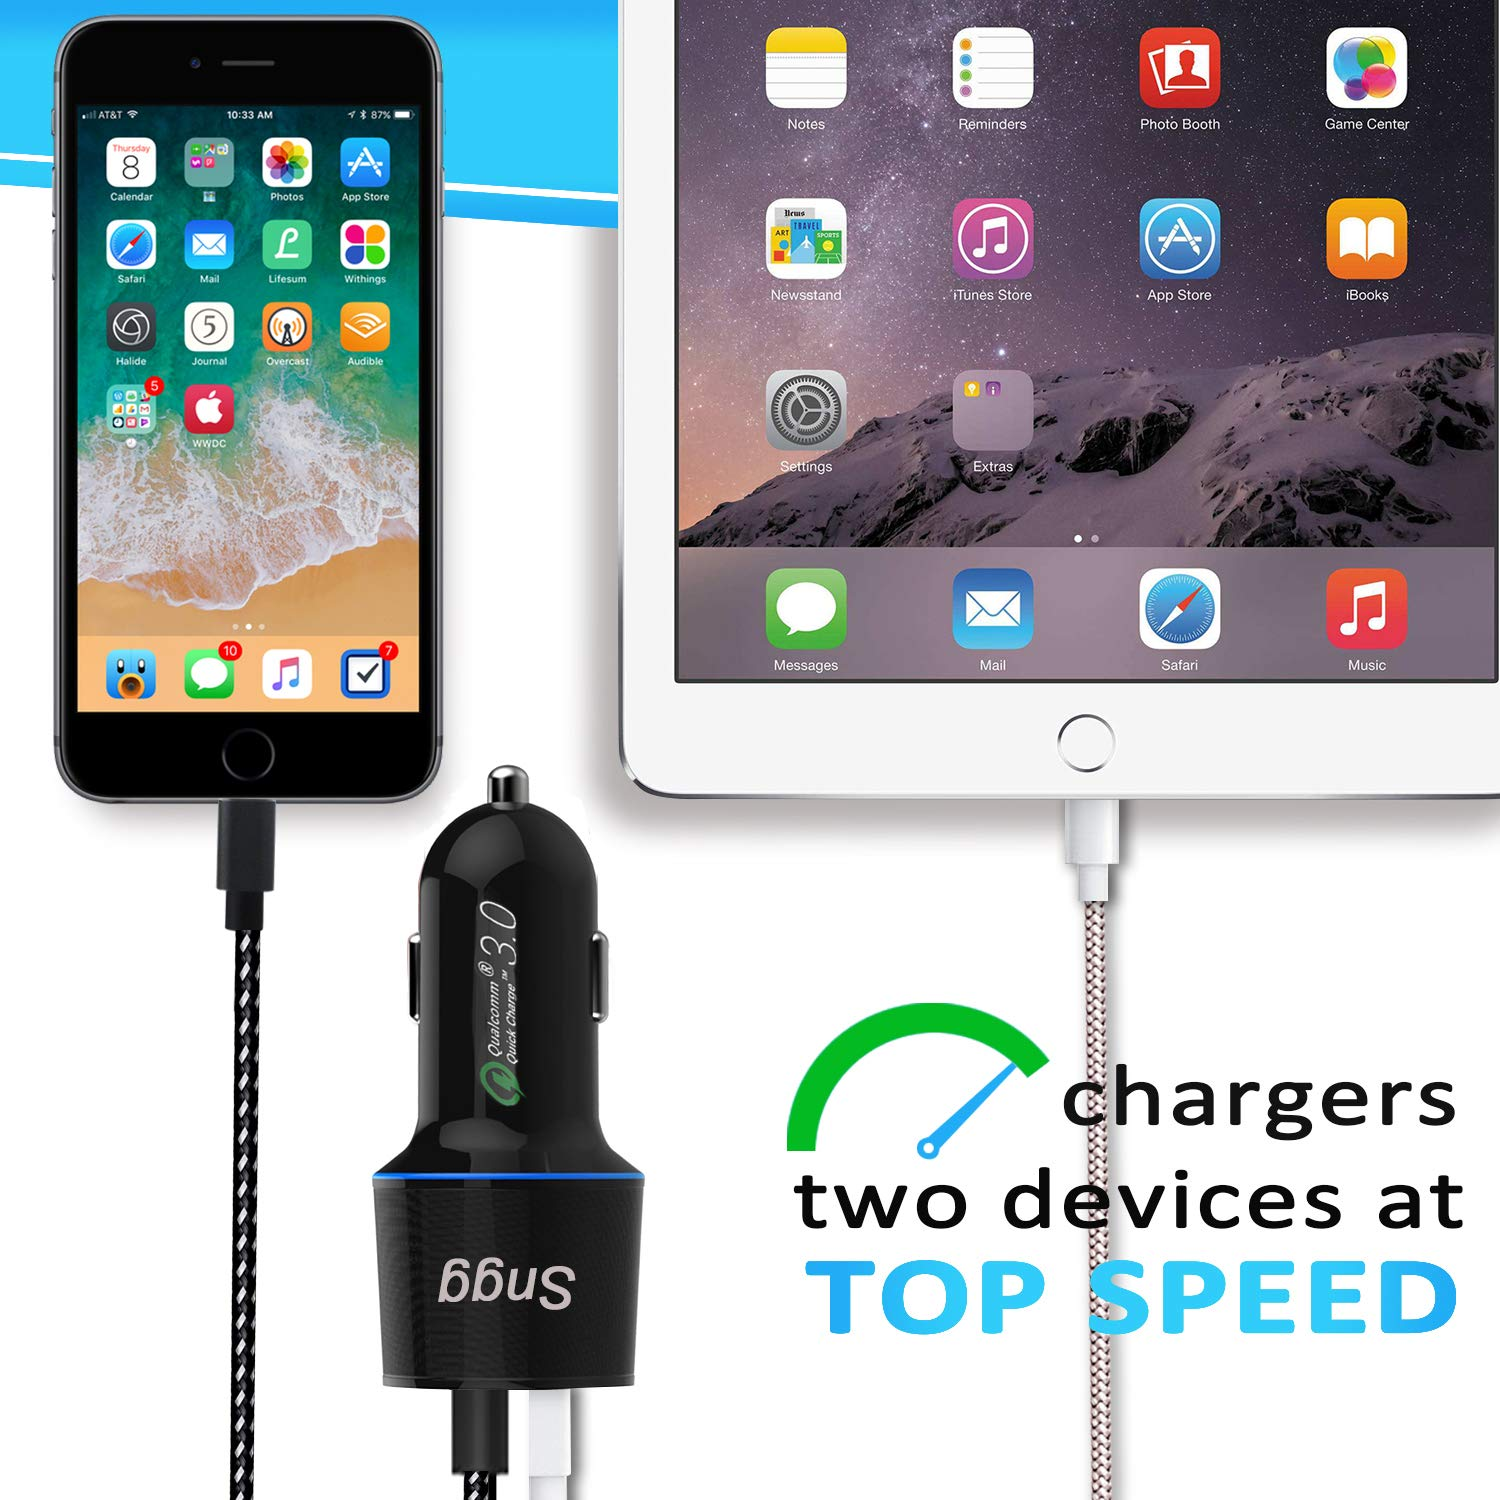 Phone Car Charger,Sngg QC3.0 Rapid USB Car Charger+5ft Phone Charging Cable Compatible iPhone X//8//8 Plus//7//6//6S Plus 5S 5 5C SE,iPad More Black iPhone Car Charger